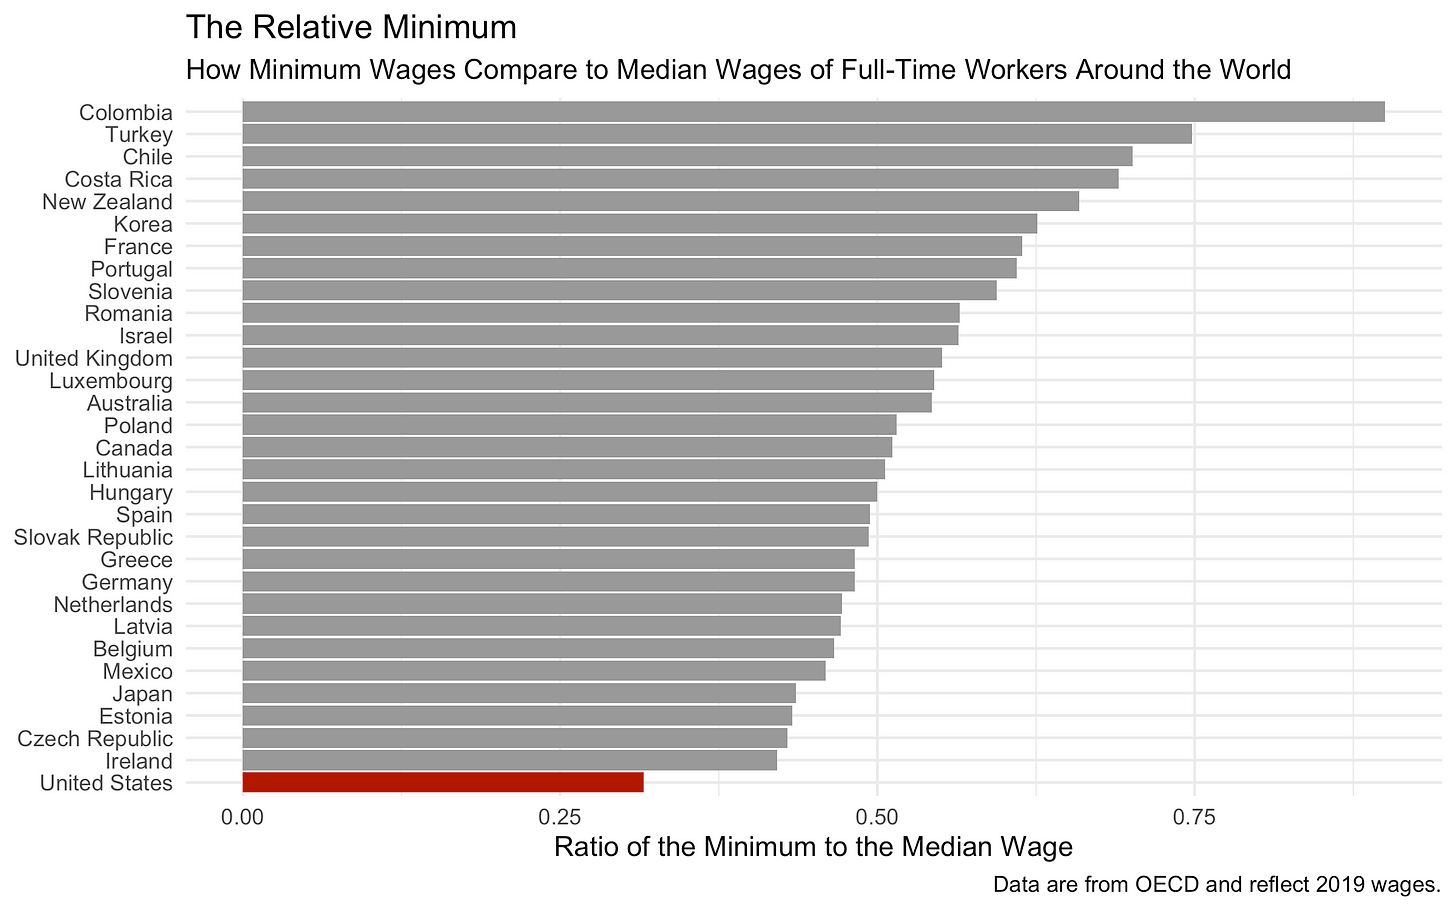 How minimum wages compare to median wages of full-time workers around the world